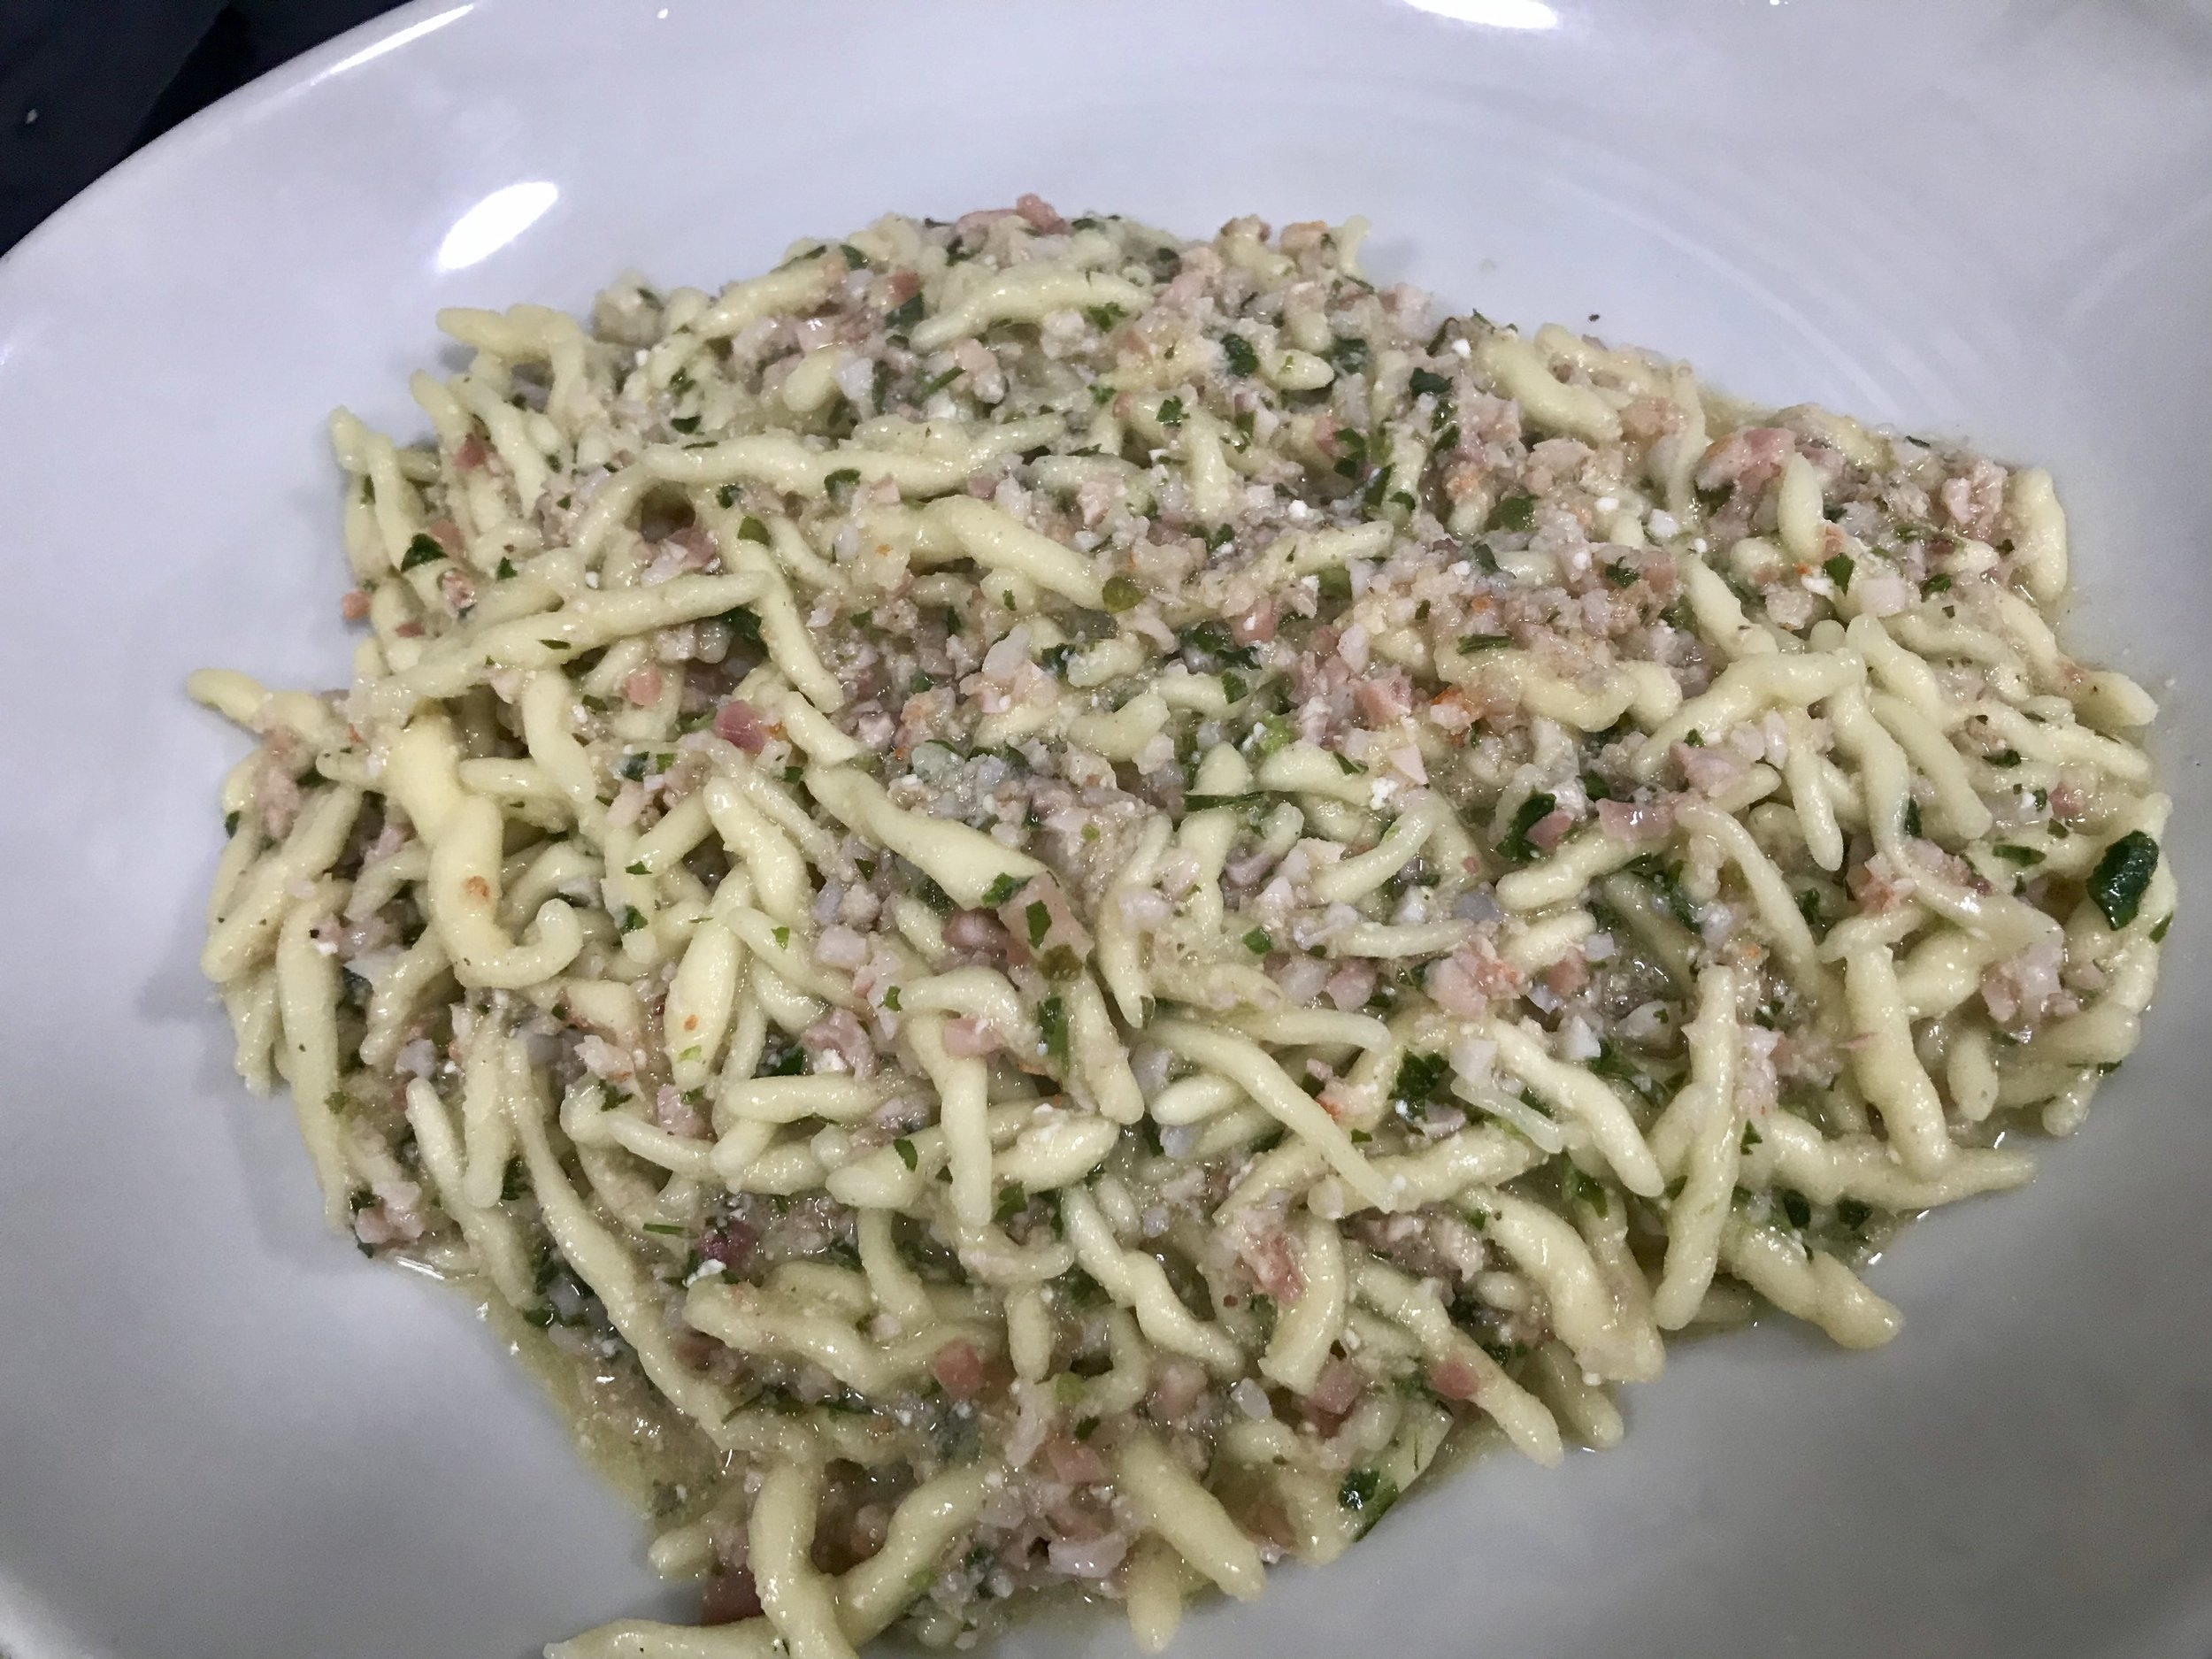 We also tasted this delicious seafood pasta